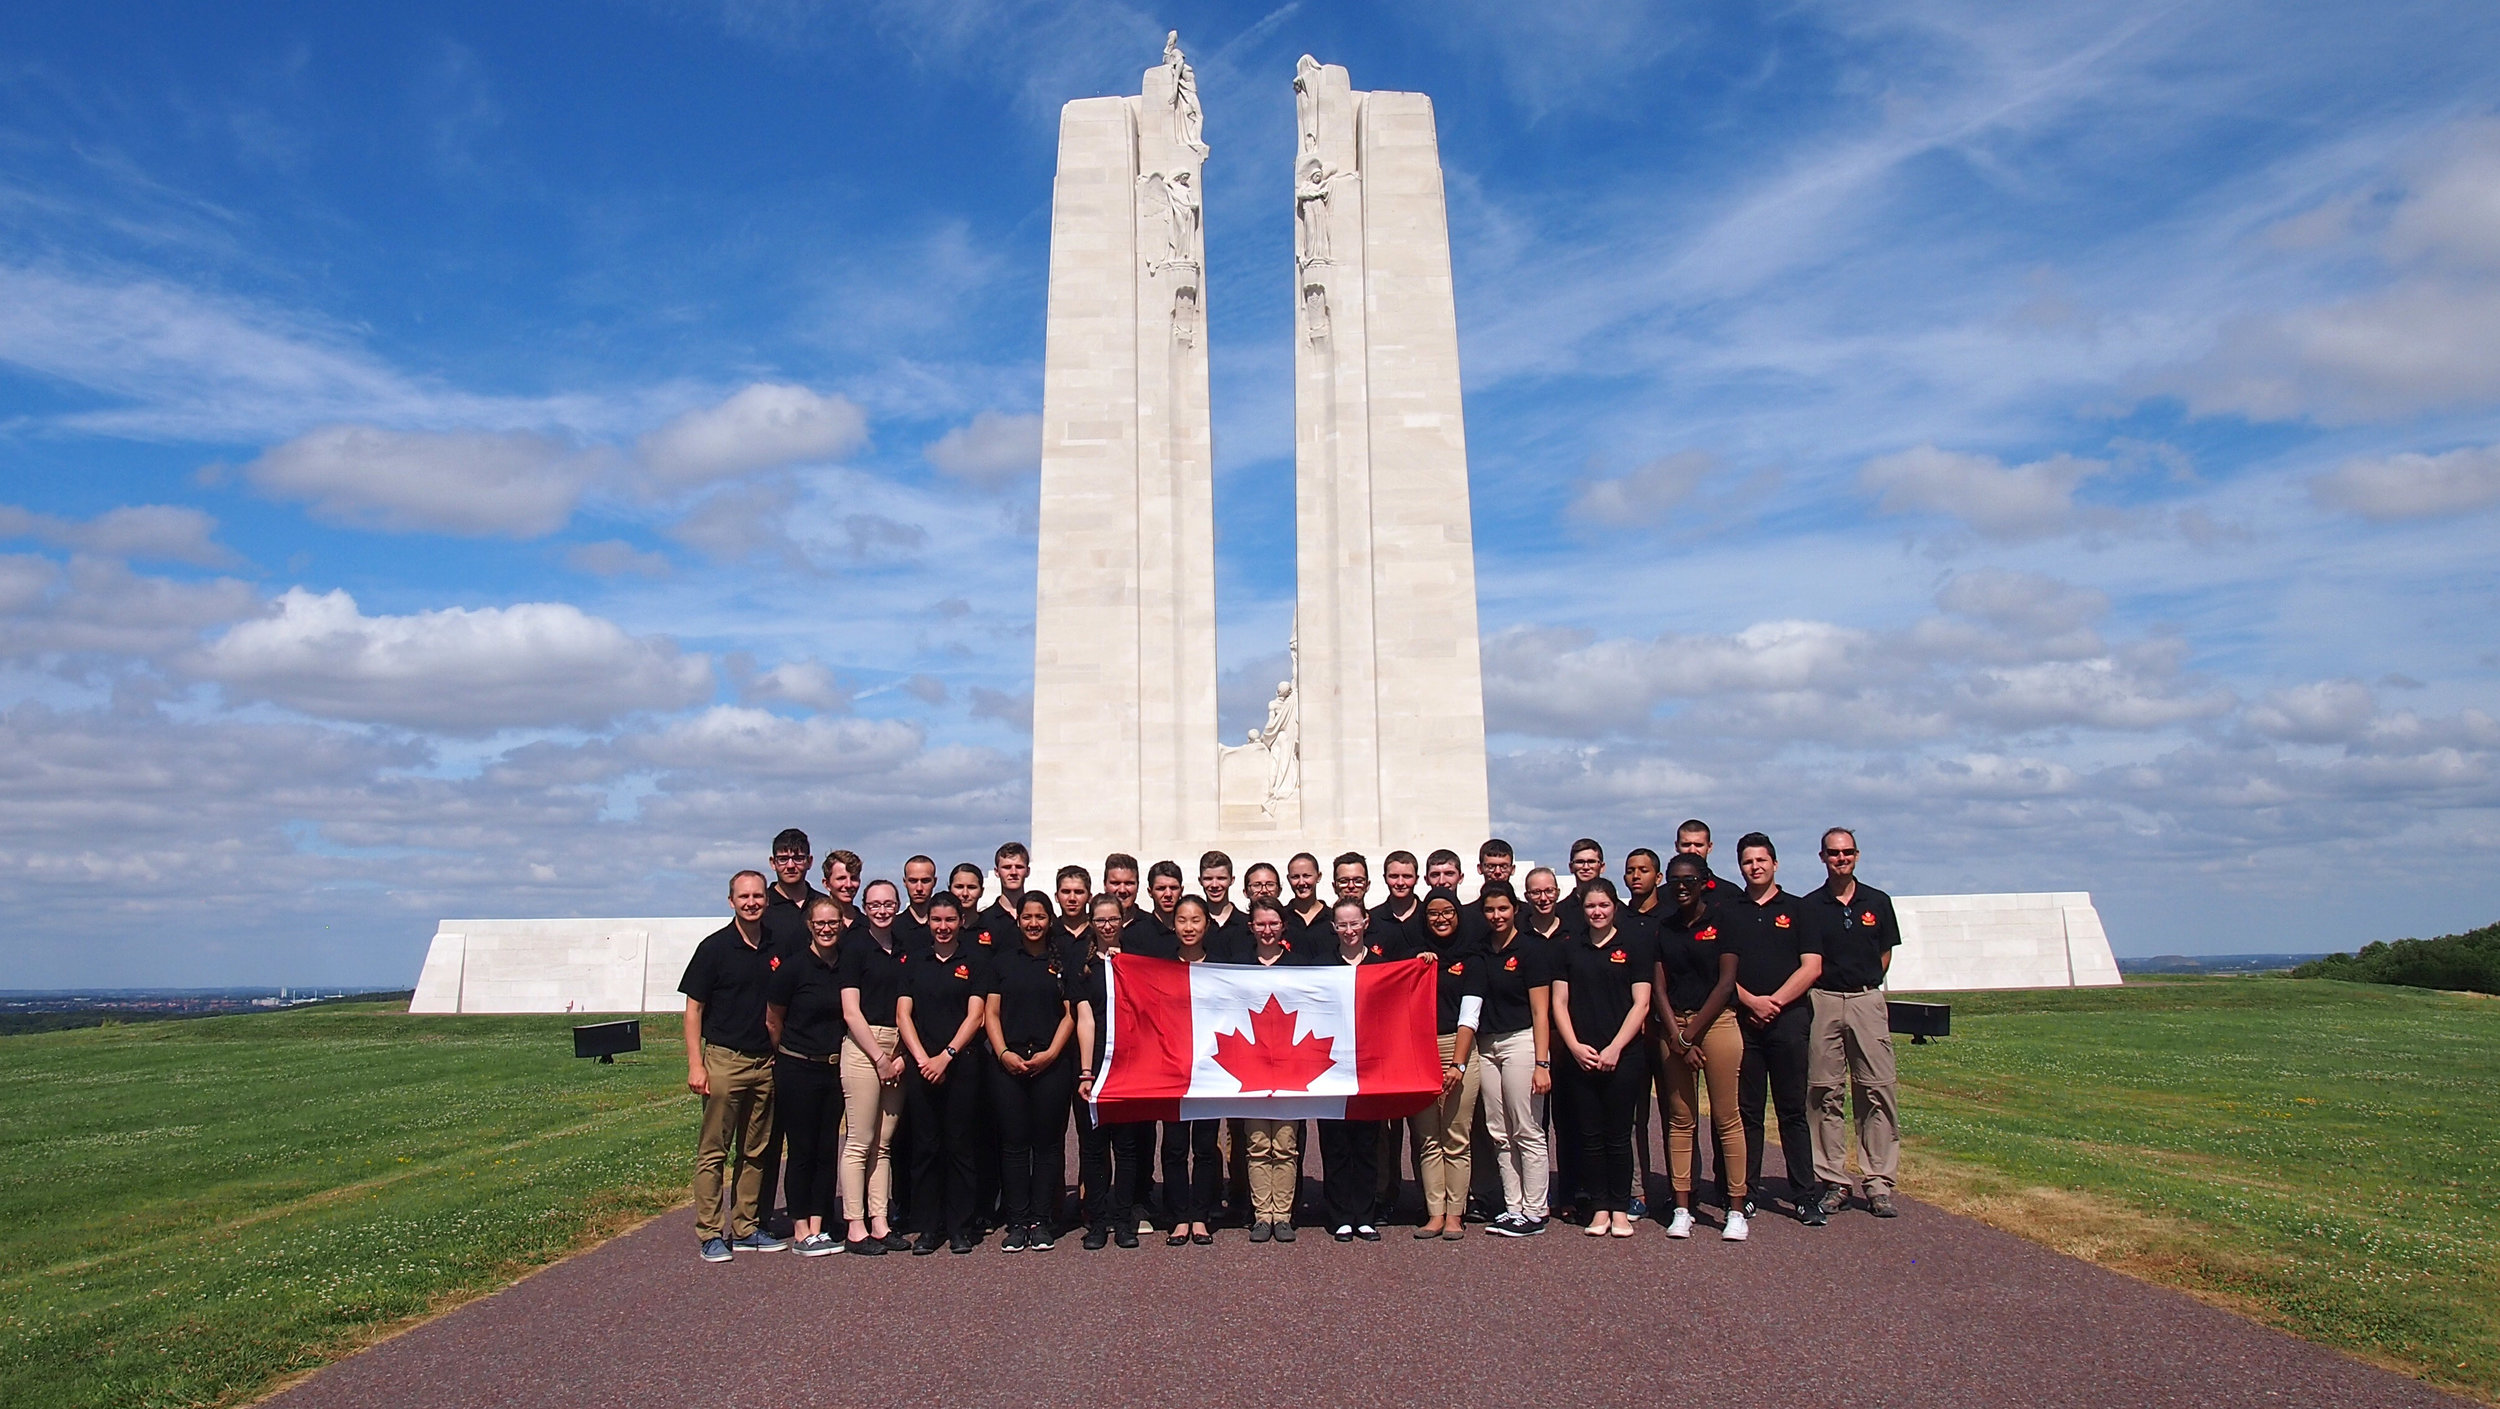 Visiting battlefields, cemeteries and memorials in The Netherlands, Belgium and France, the cadets learned of the sacrifices and hardships Canadian soldiers endured in both World Wars.